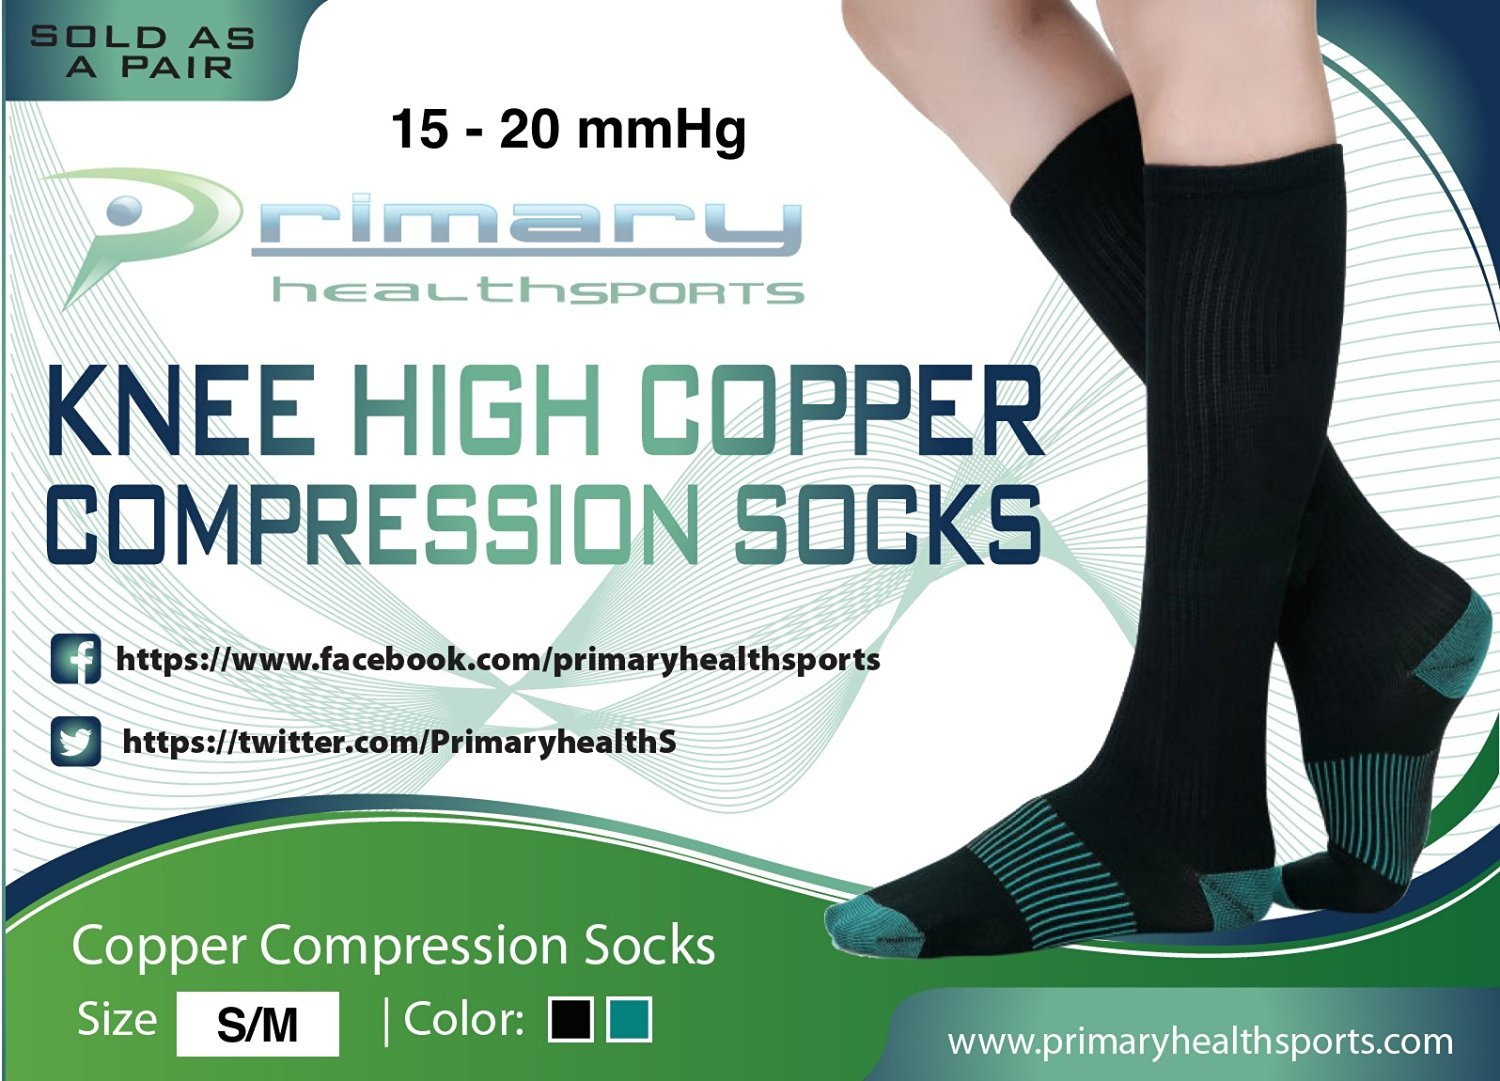 Primary Health Sports Best Compression Copper Socks - Great for Men, Women, Travelers, Nurses, Pregnancy - Protect & Support your Calves, Ankles, and Feet. Graduated Compression. 15-20mmhg by Primary Health Sports (Image #7)